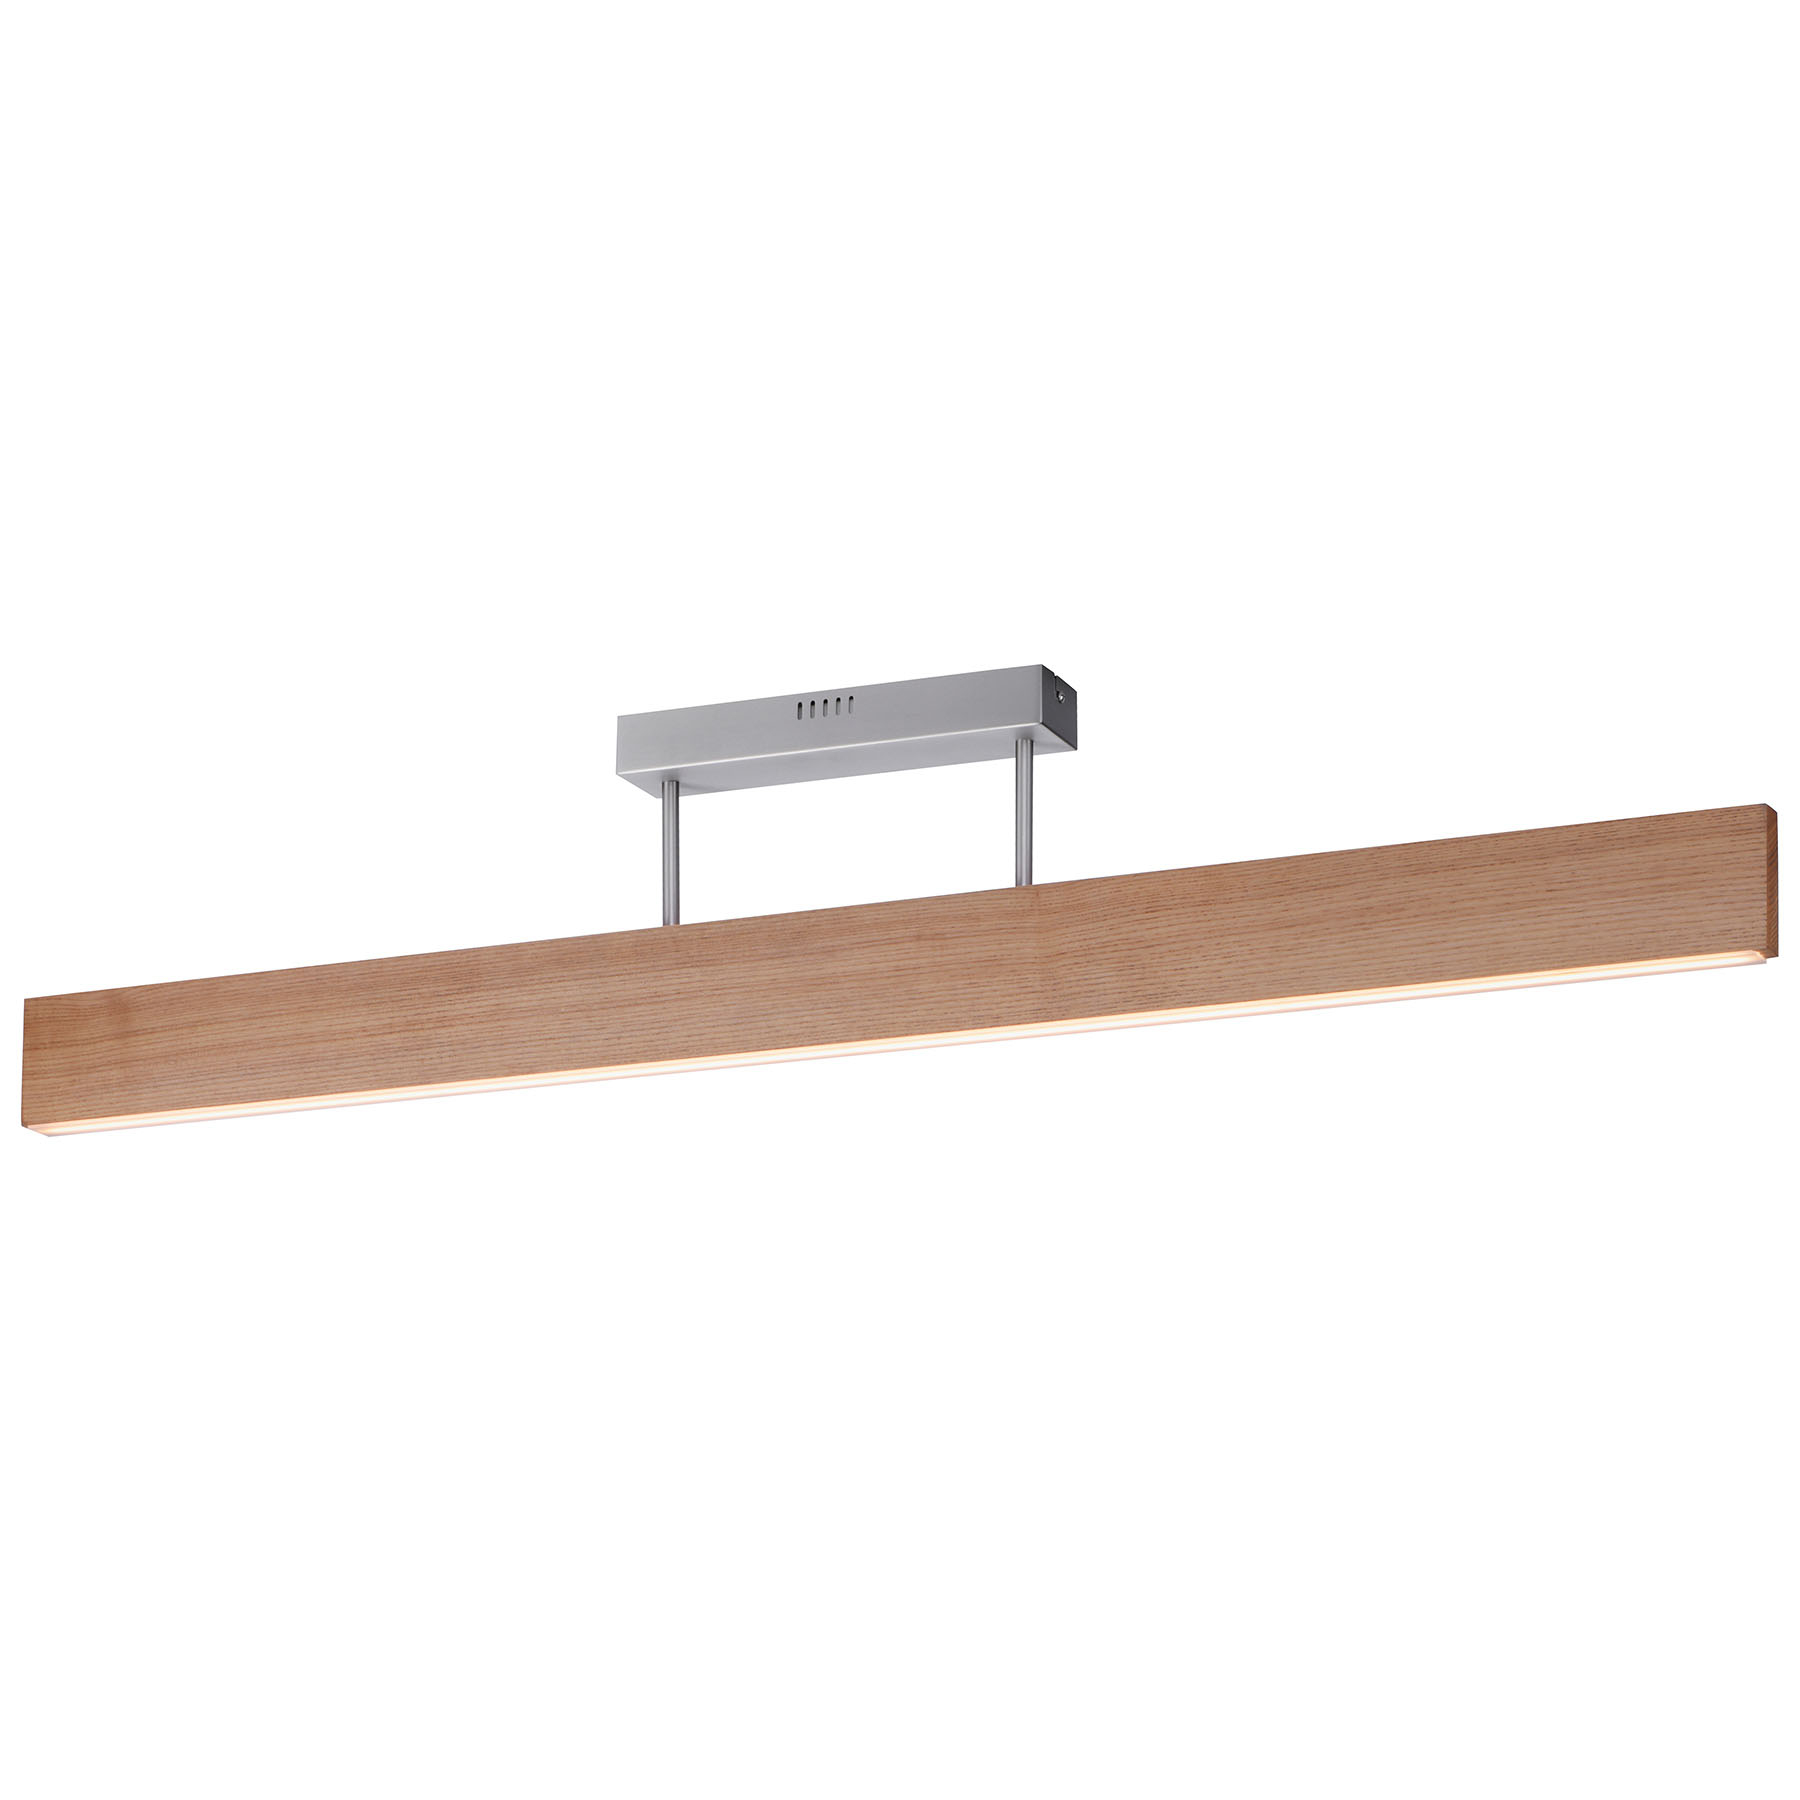 Paul Neuhaus Q-TIMBER LED-Deckenleuchte